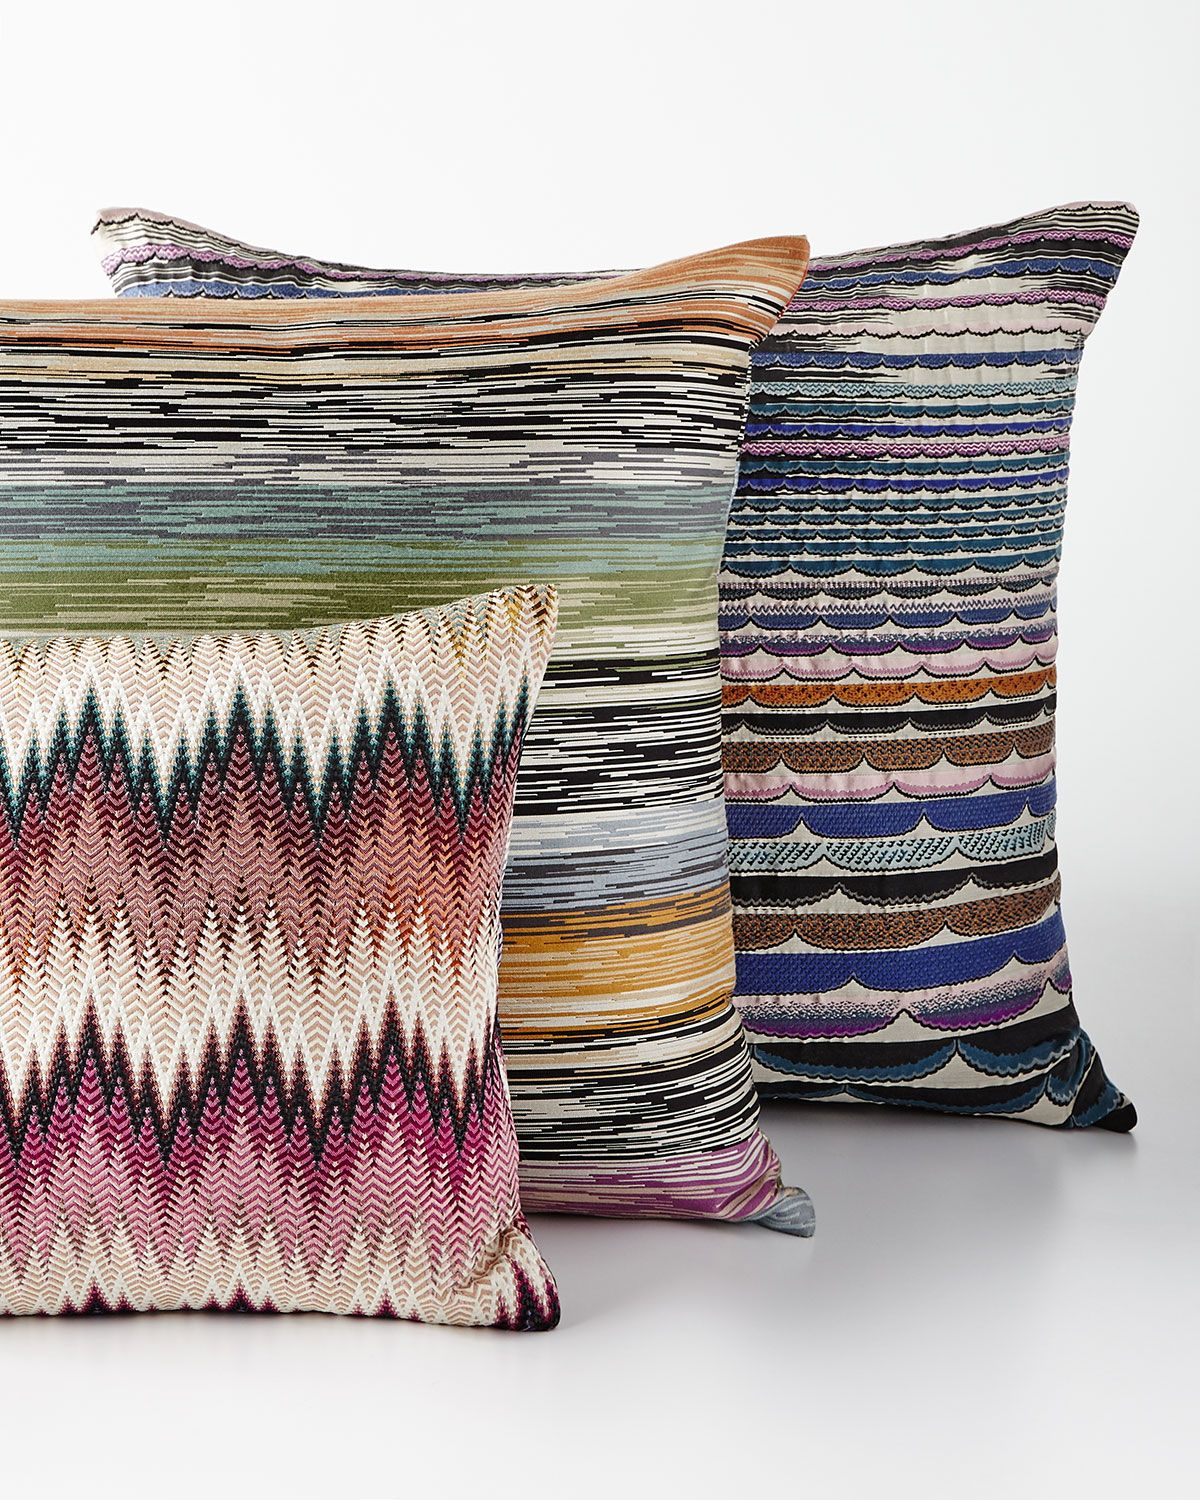 Missoni Home City Pillows Matching Items Pillows Throw